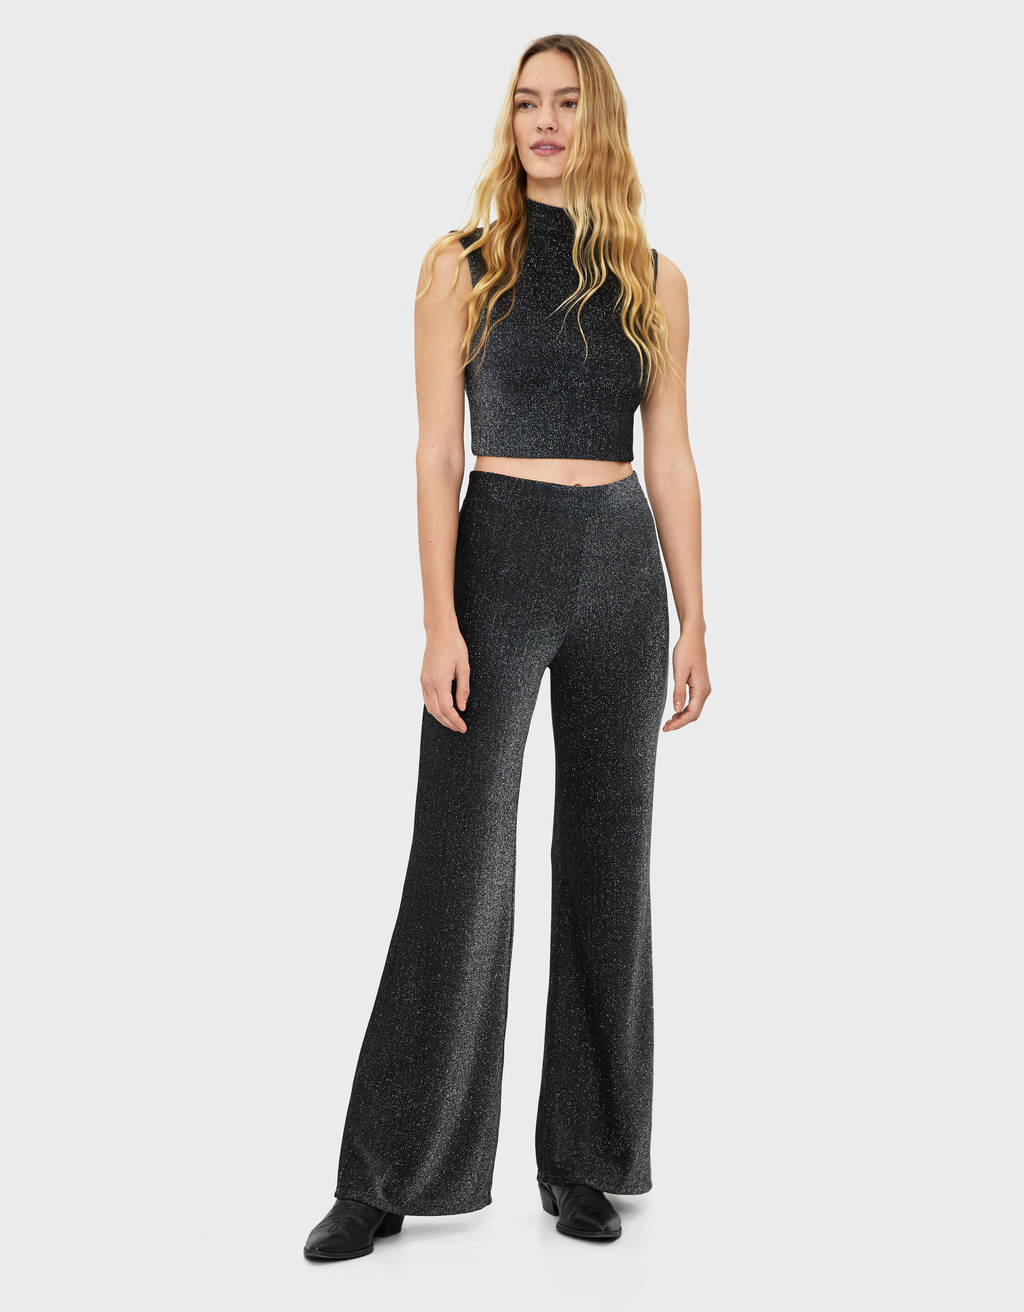 Flared metallic thread pants